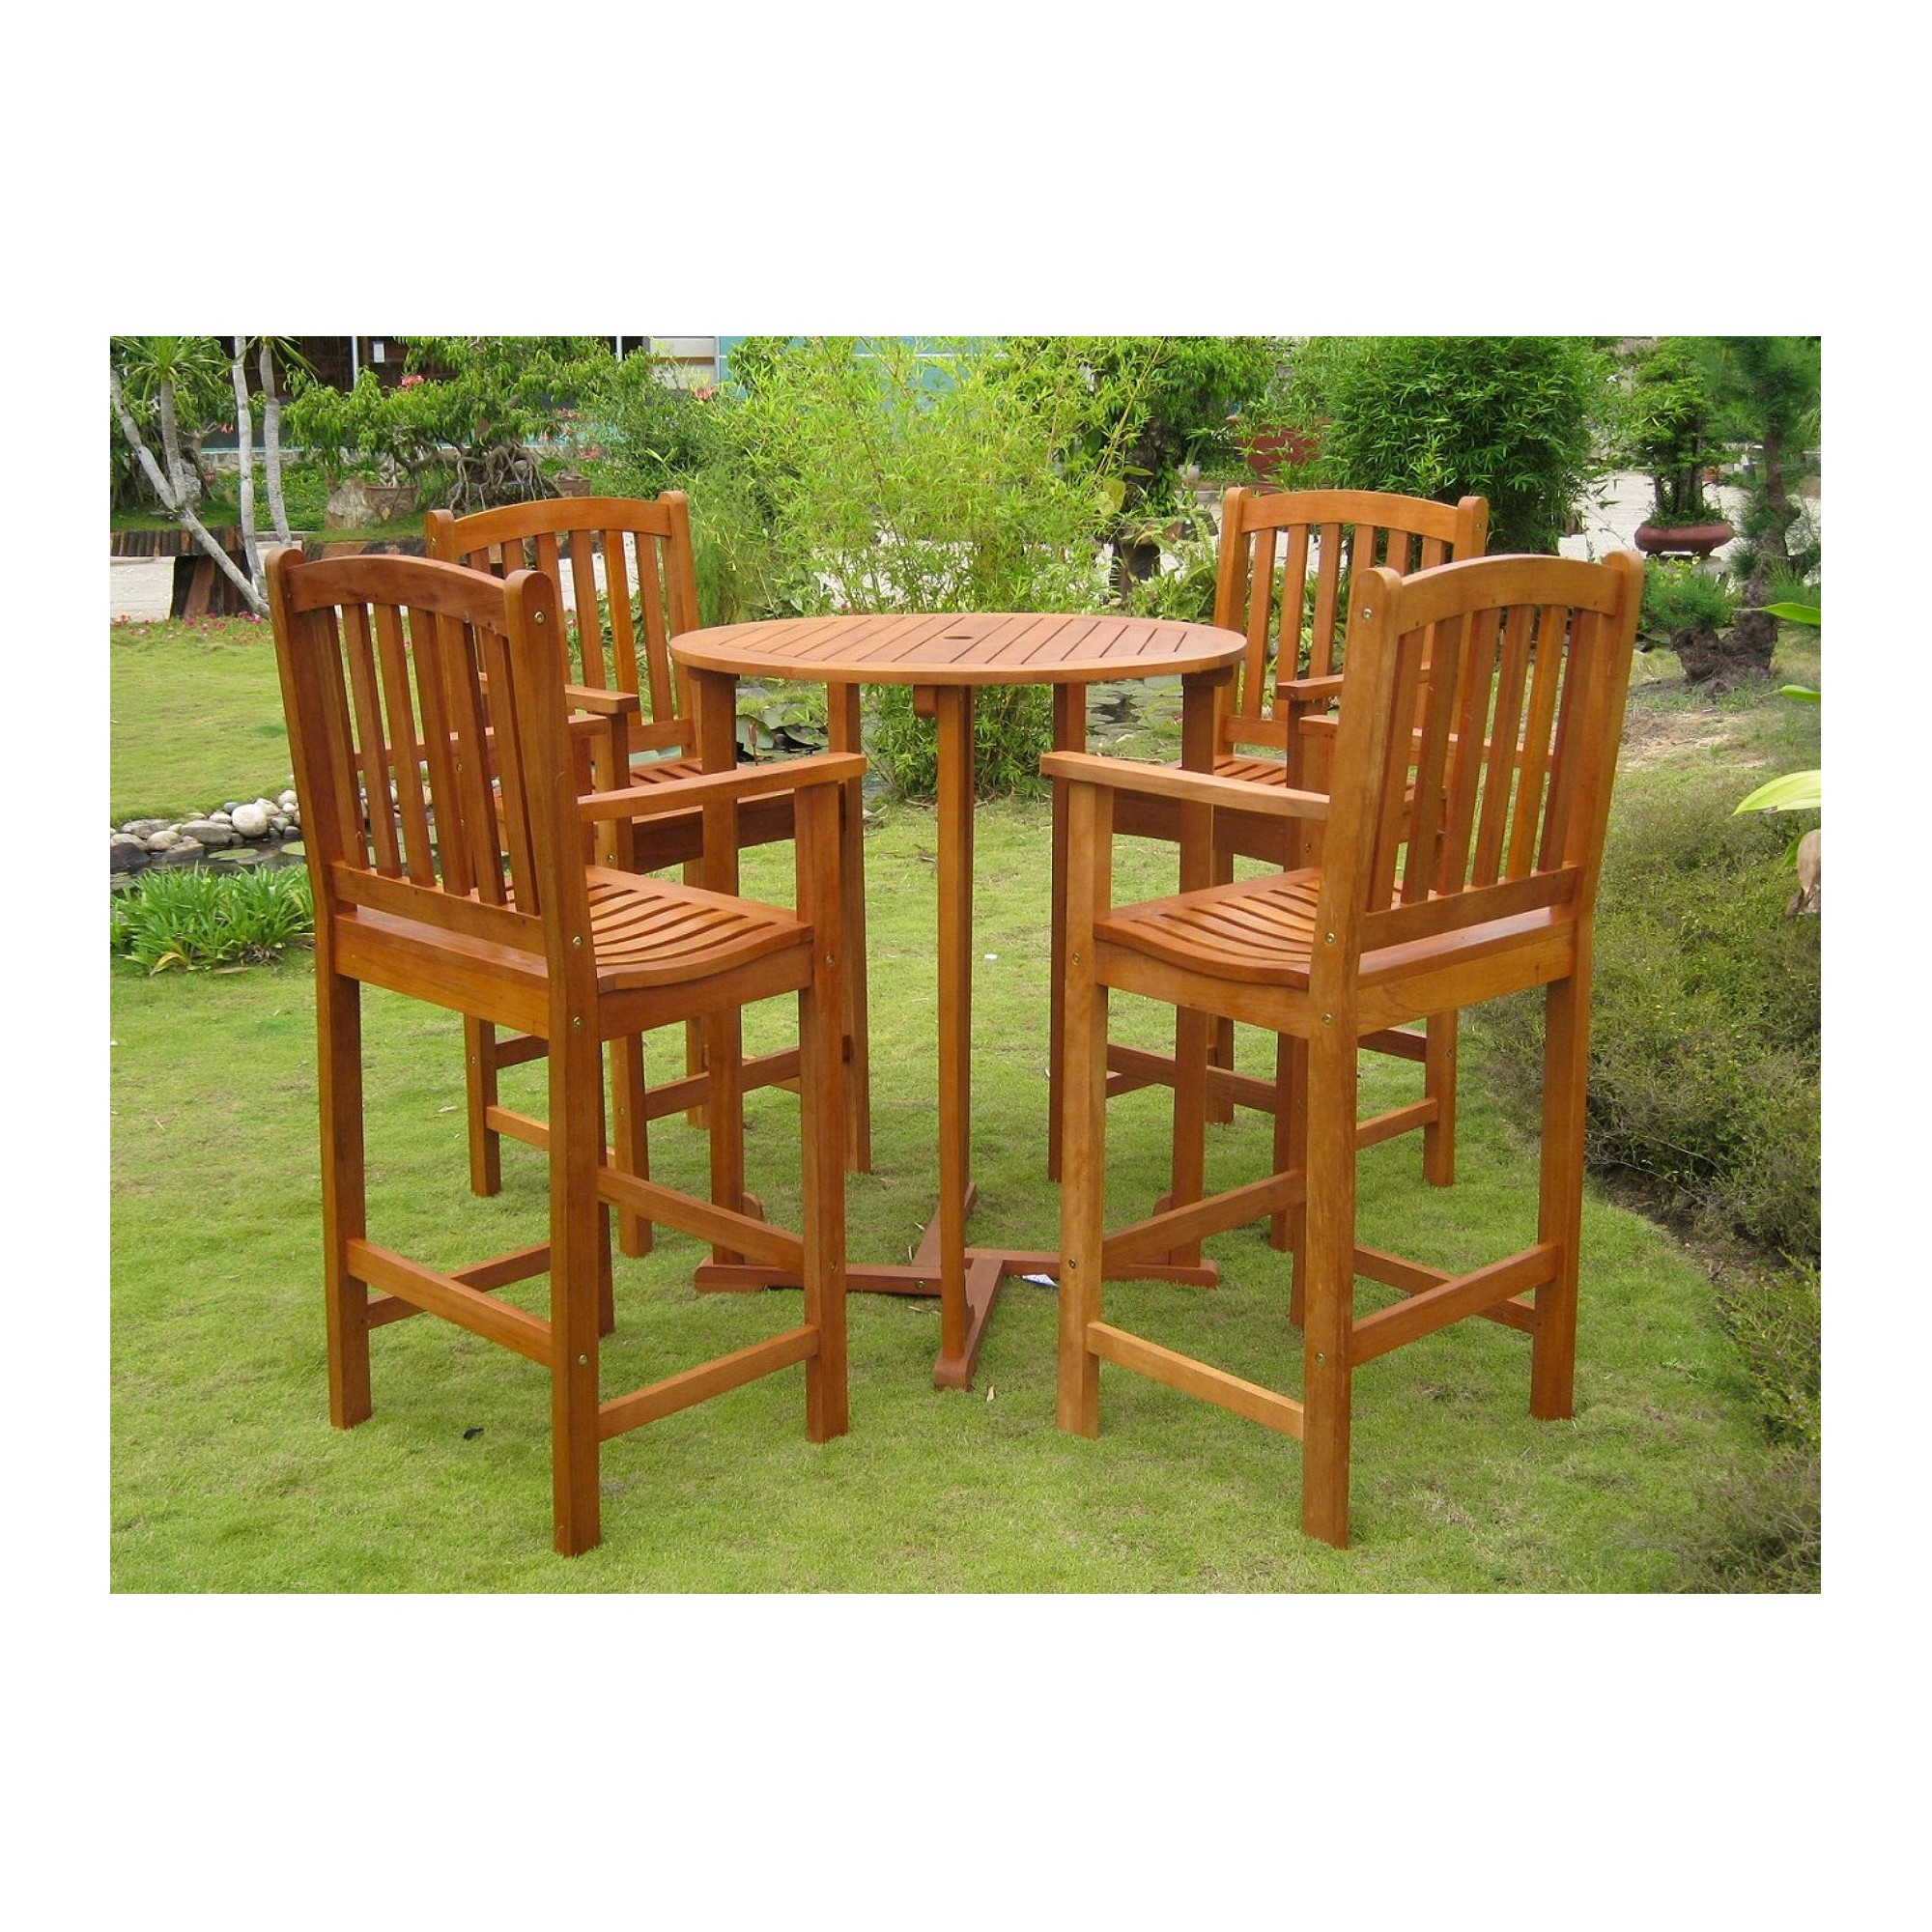 Royal tahiti albacete 5 piece wood bar height patio dining furniture set